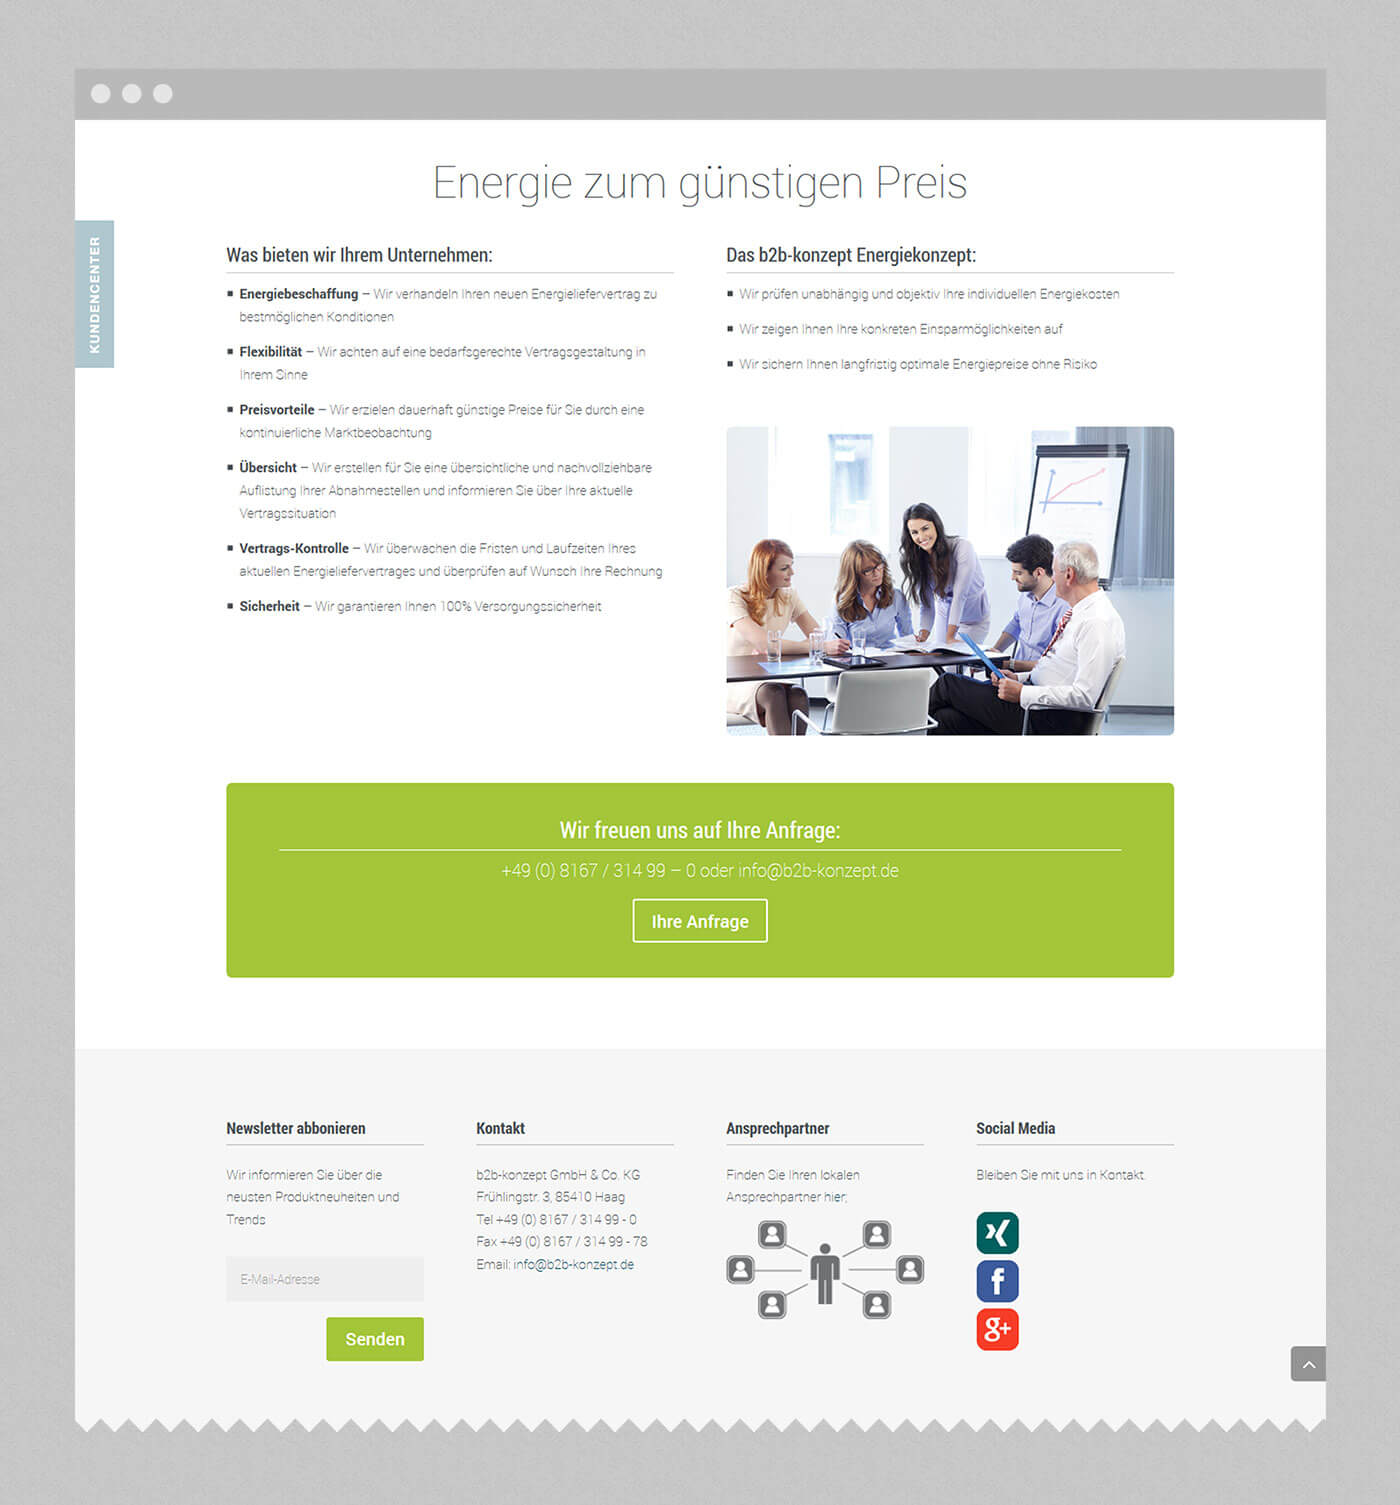 web designer stuttgart - dt media group - b2b konzept